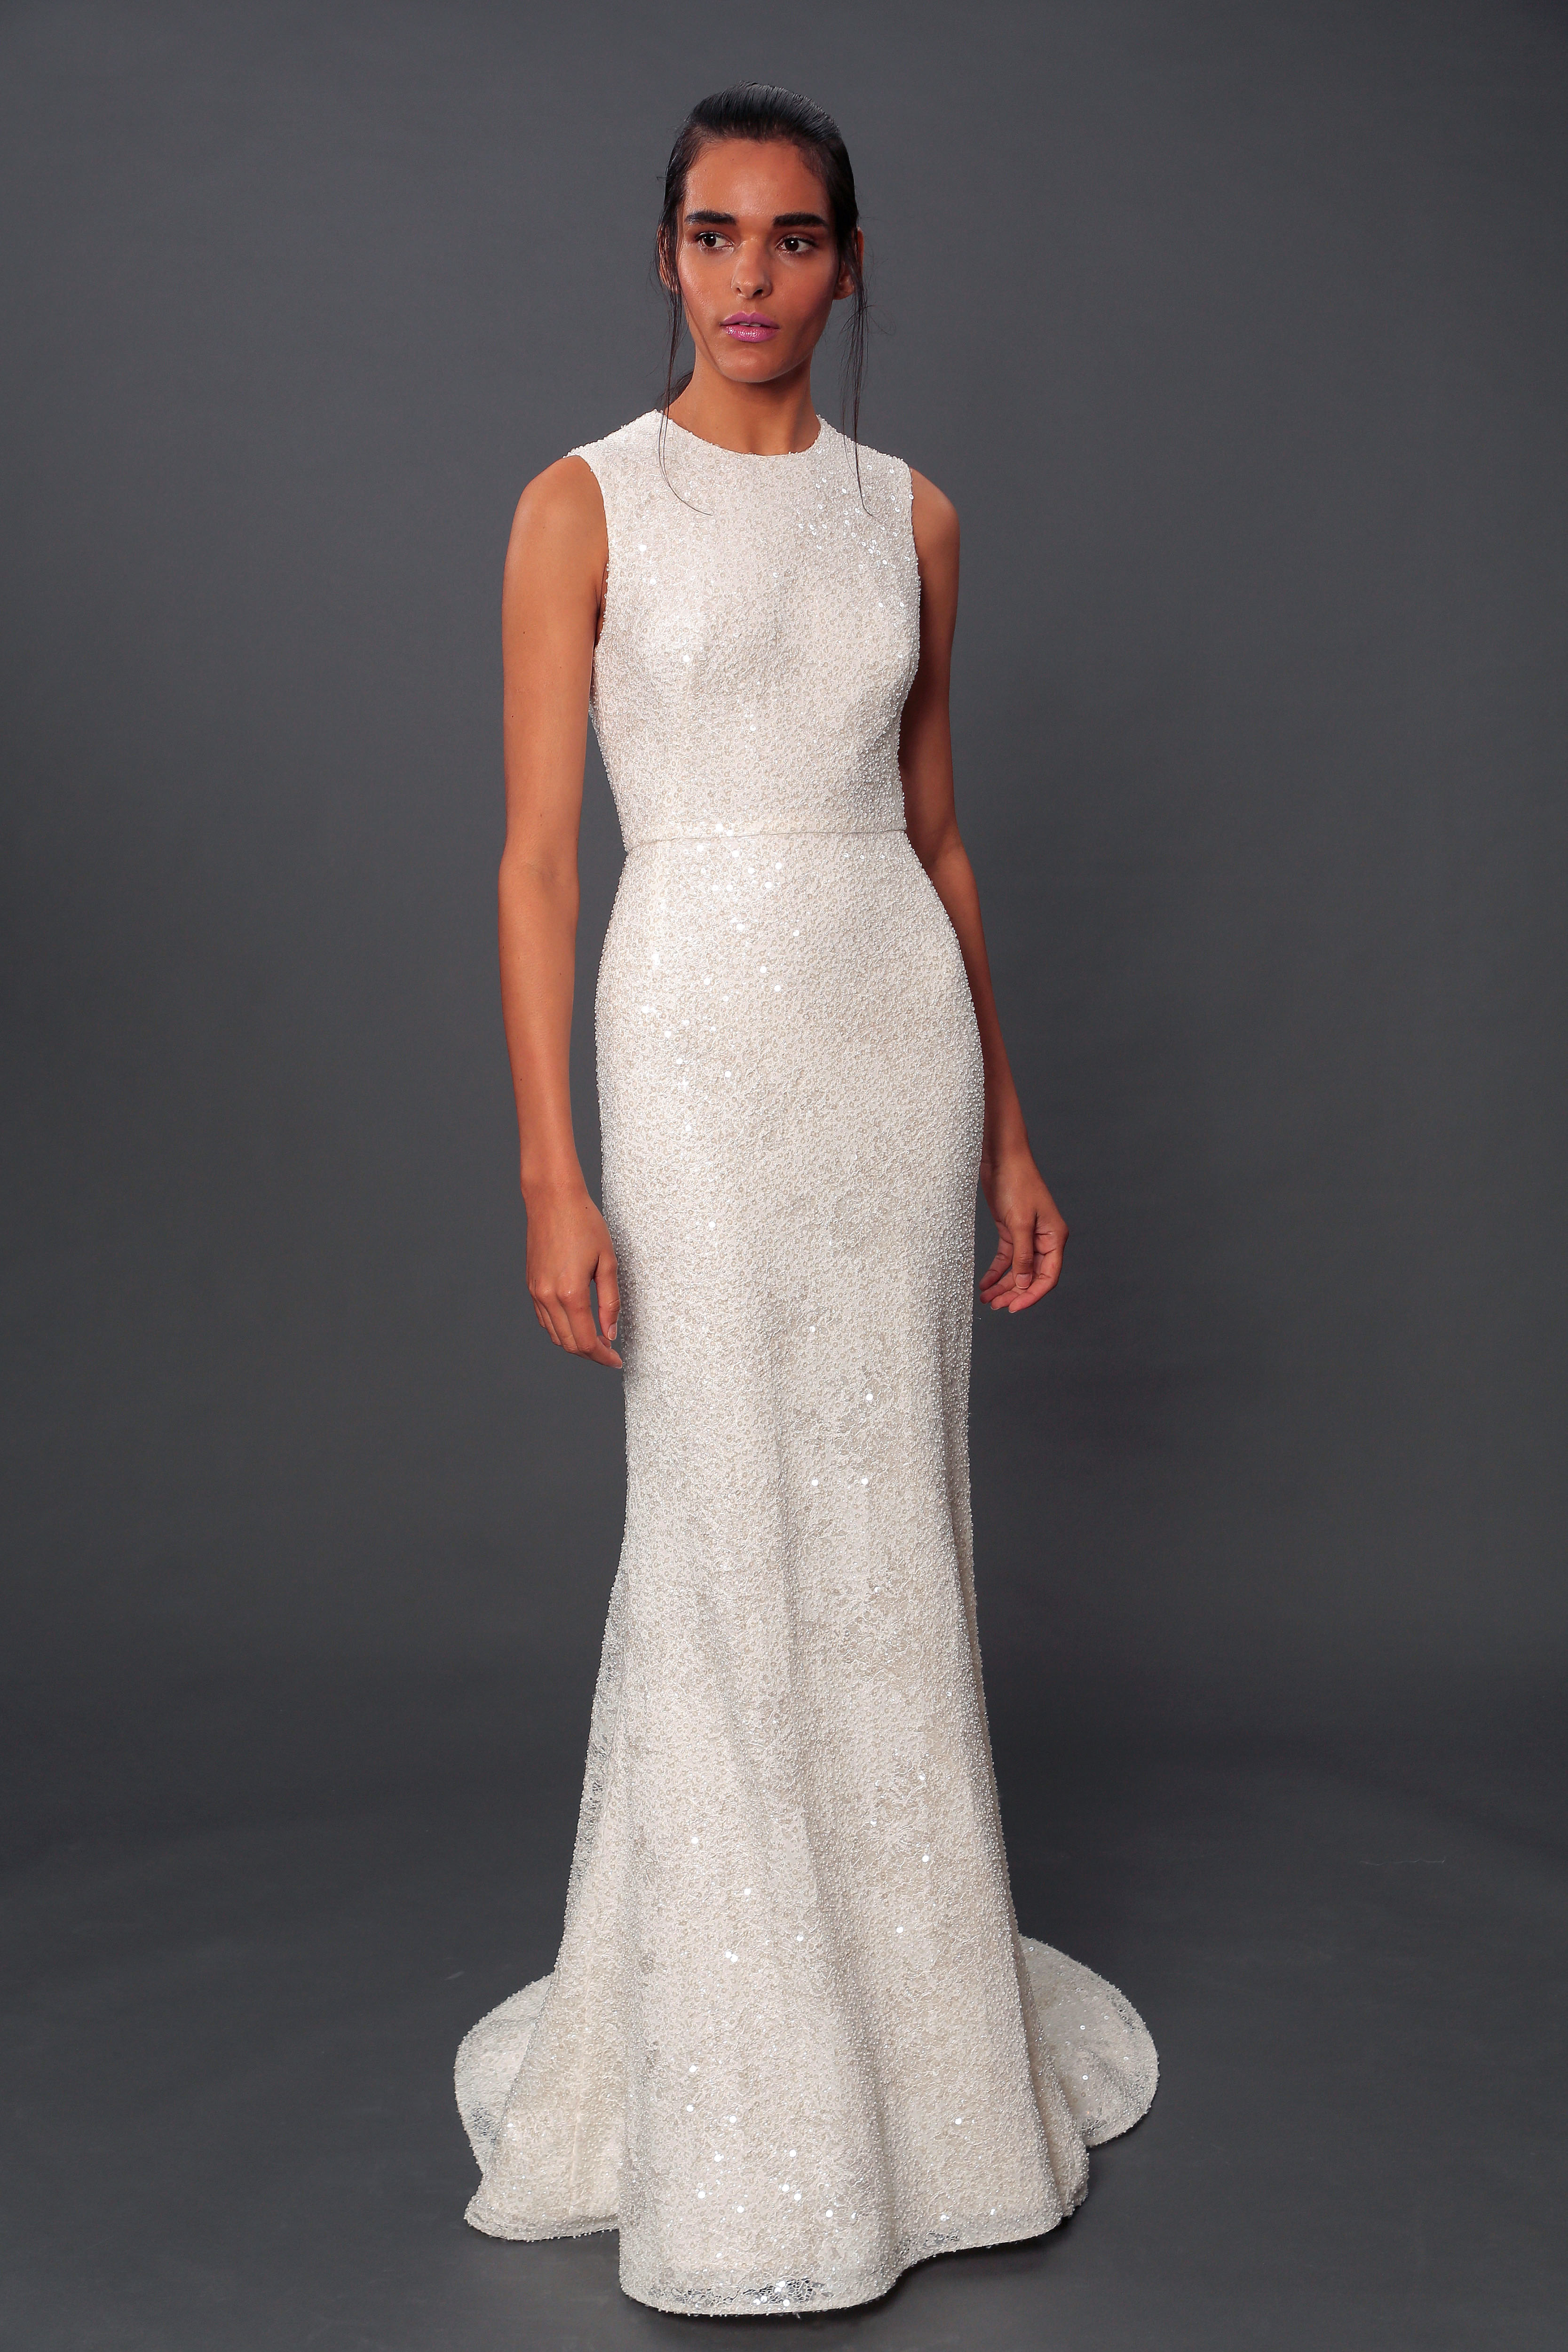 isabelle armstrong fall 2019 sheath high neck glitter wedding dress